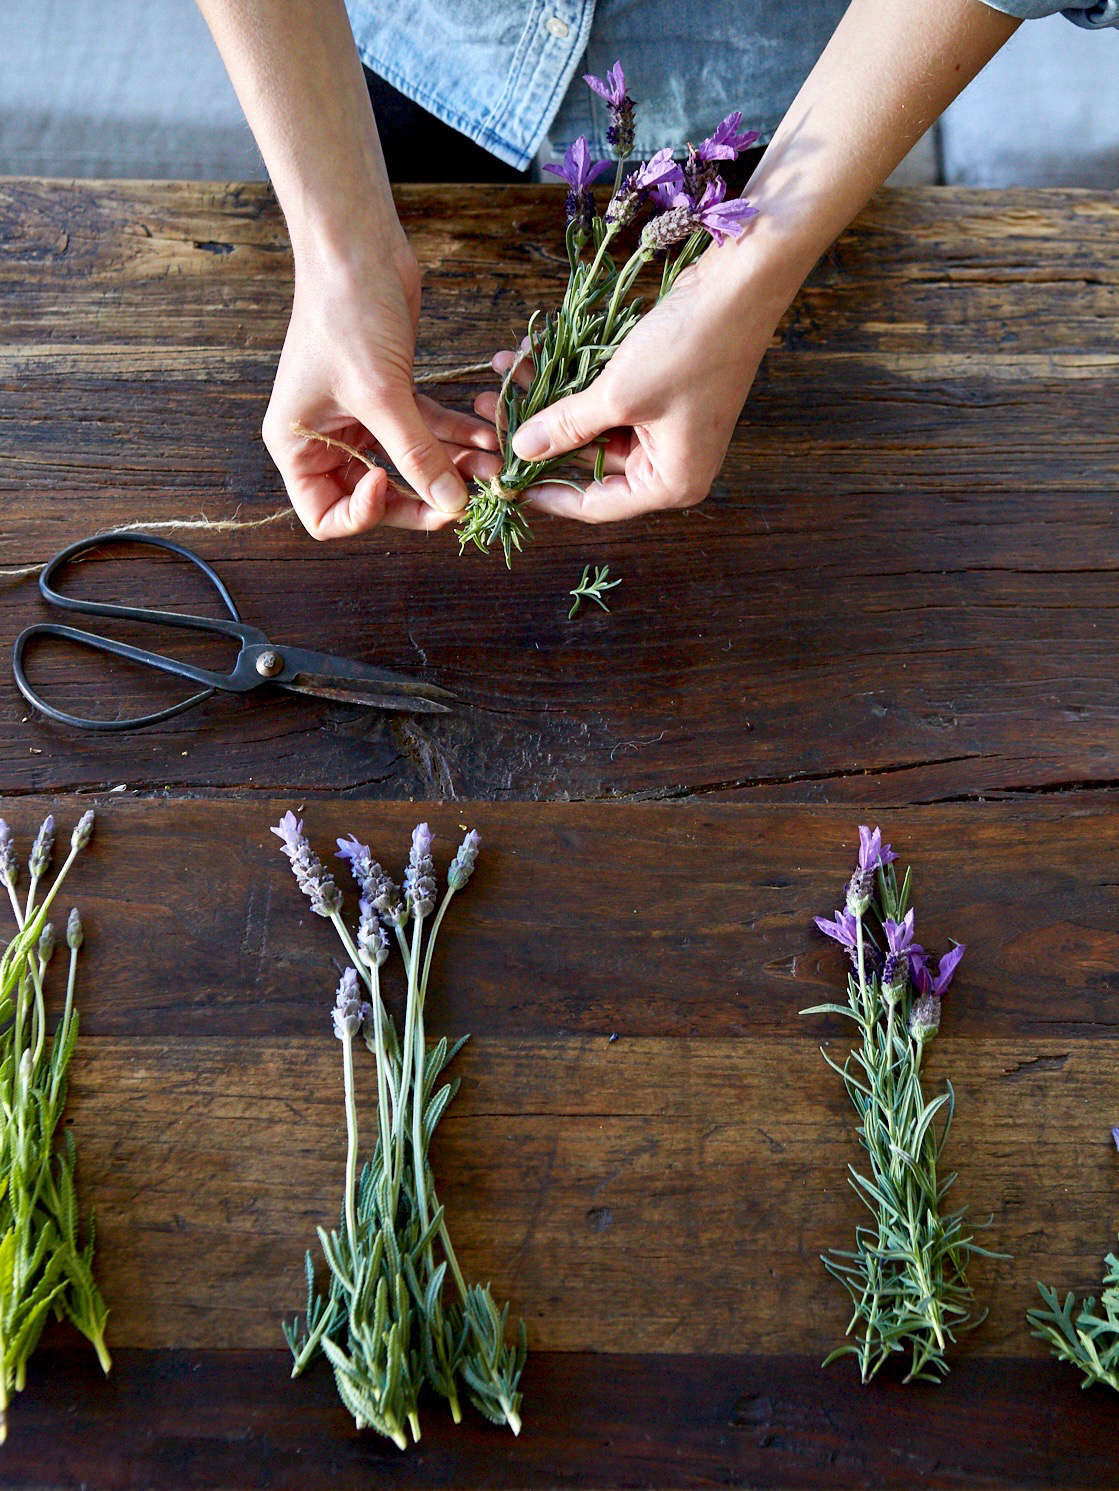 The other day at my house we experimented with making dried herbs with Spanish lavender flowers; Meredith secured bundles with twine. (Watch for our upcoming post on dried herb bundles.) Photograph by Aya Brackett.